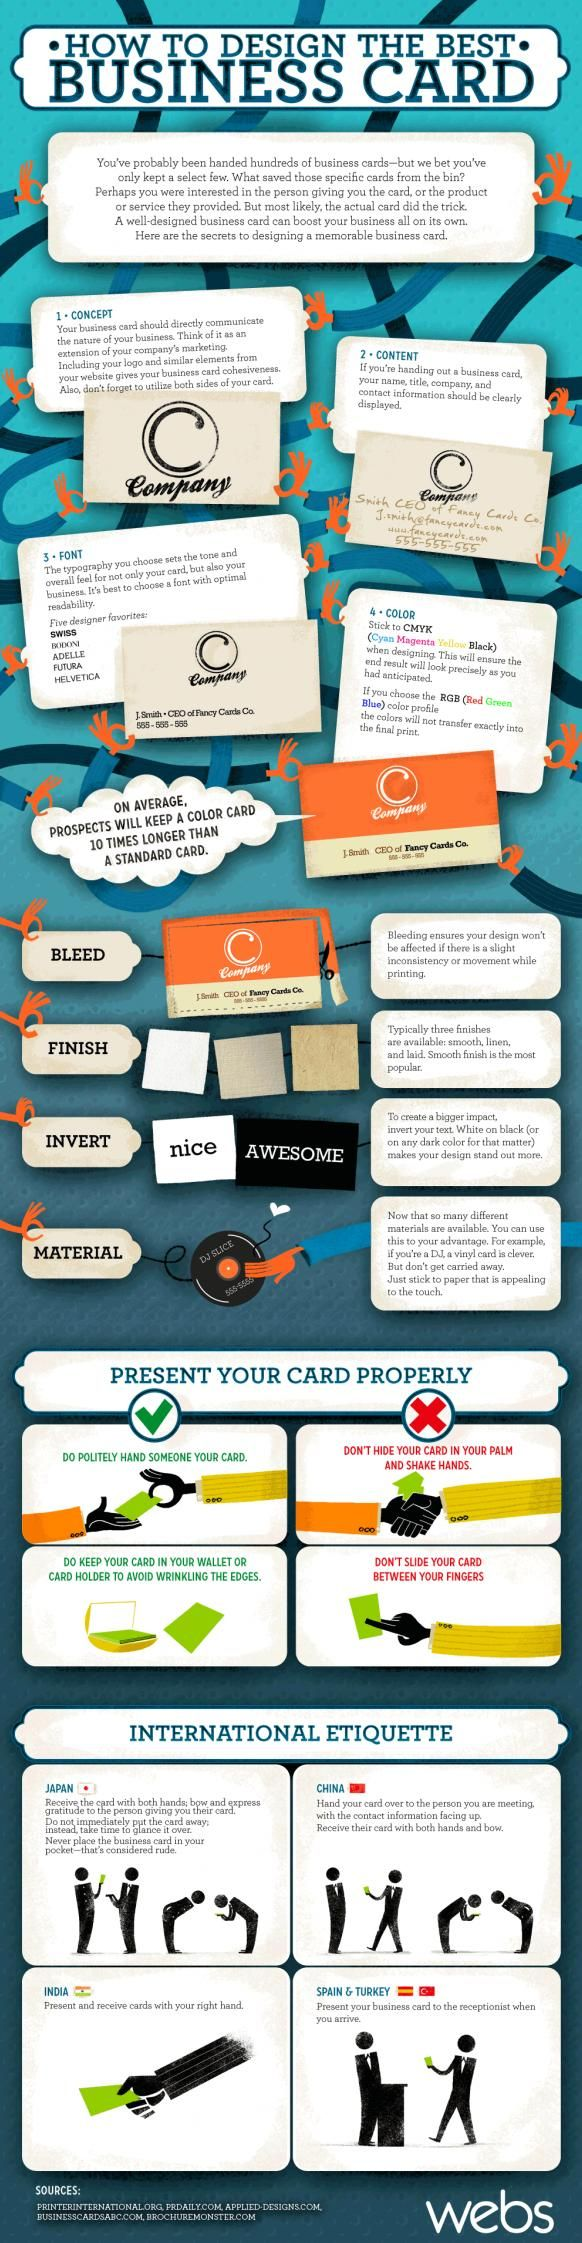 How to #Design the best #Business card